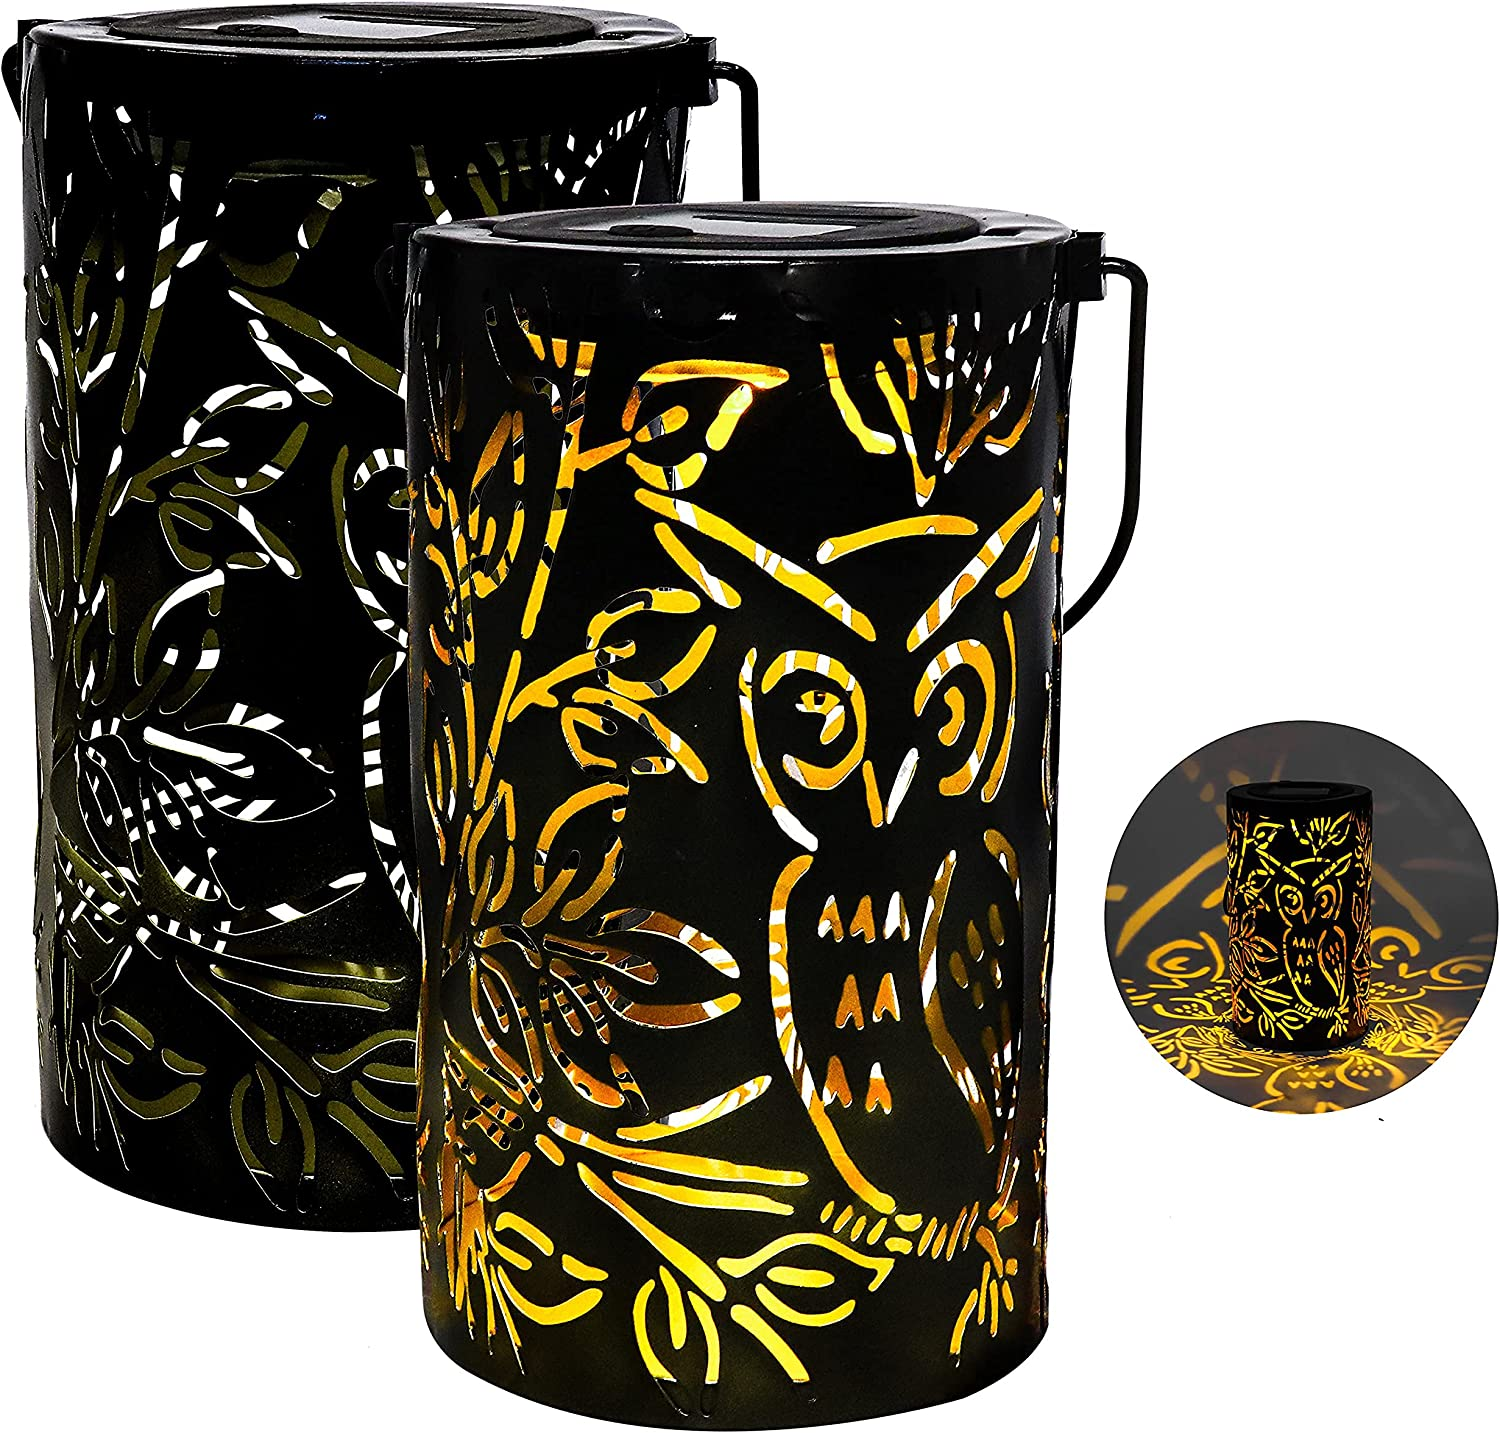 MISIXILE 2 Pack Metal Solar Lantern Outdoor Retro Decorative Solar Outdoor Lanterns with Handle Owl Design Outdoor Garden Lanterns Solar Powered for Yard Tree Fence Patio Warm White